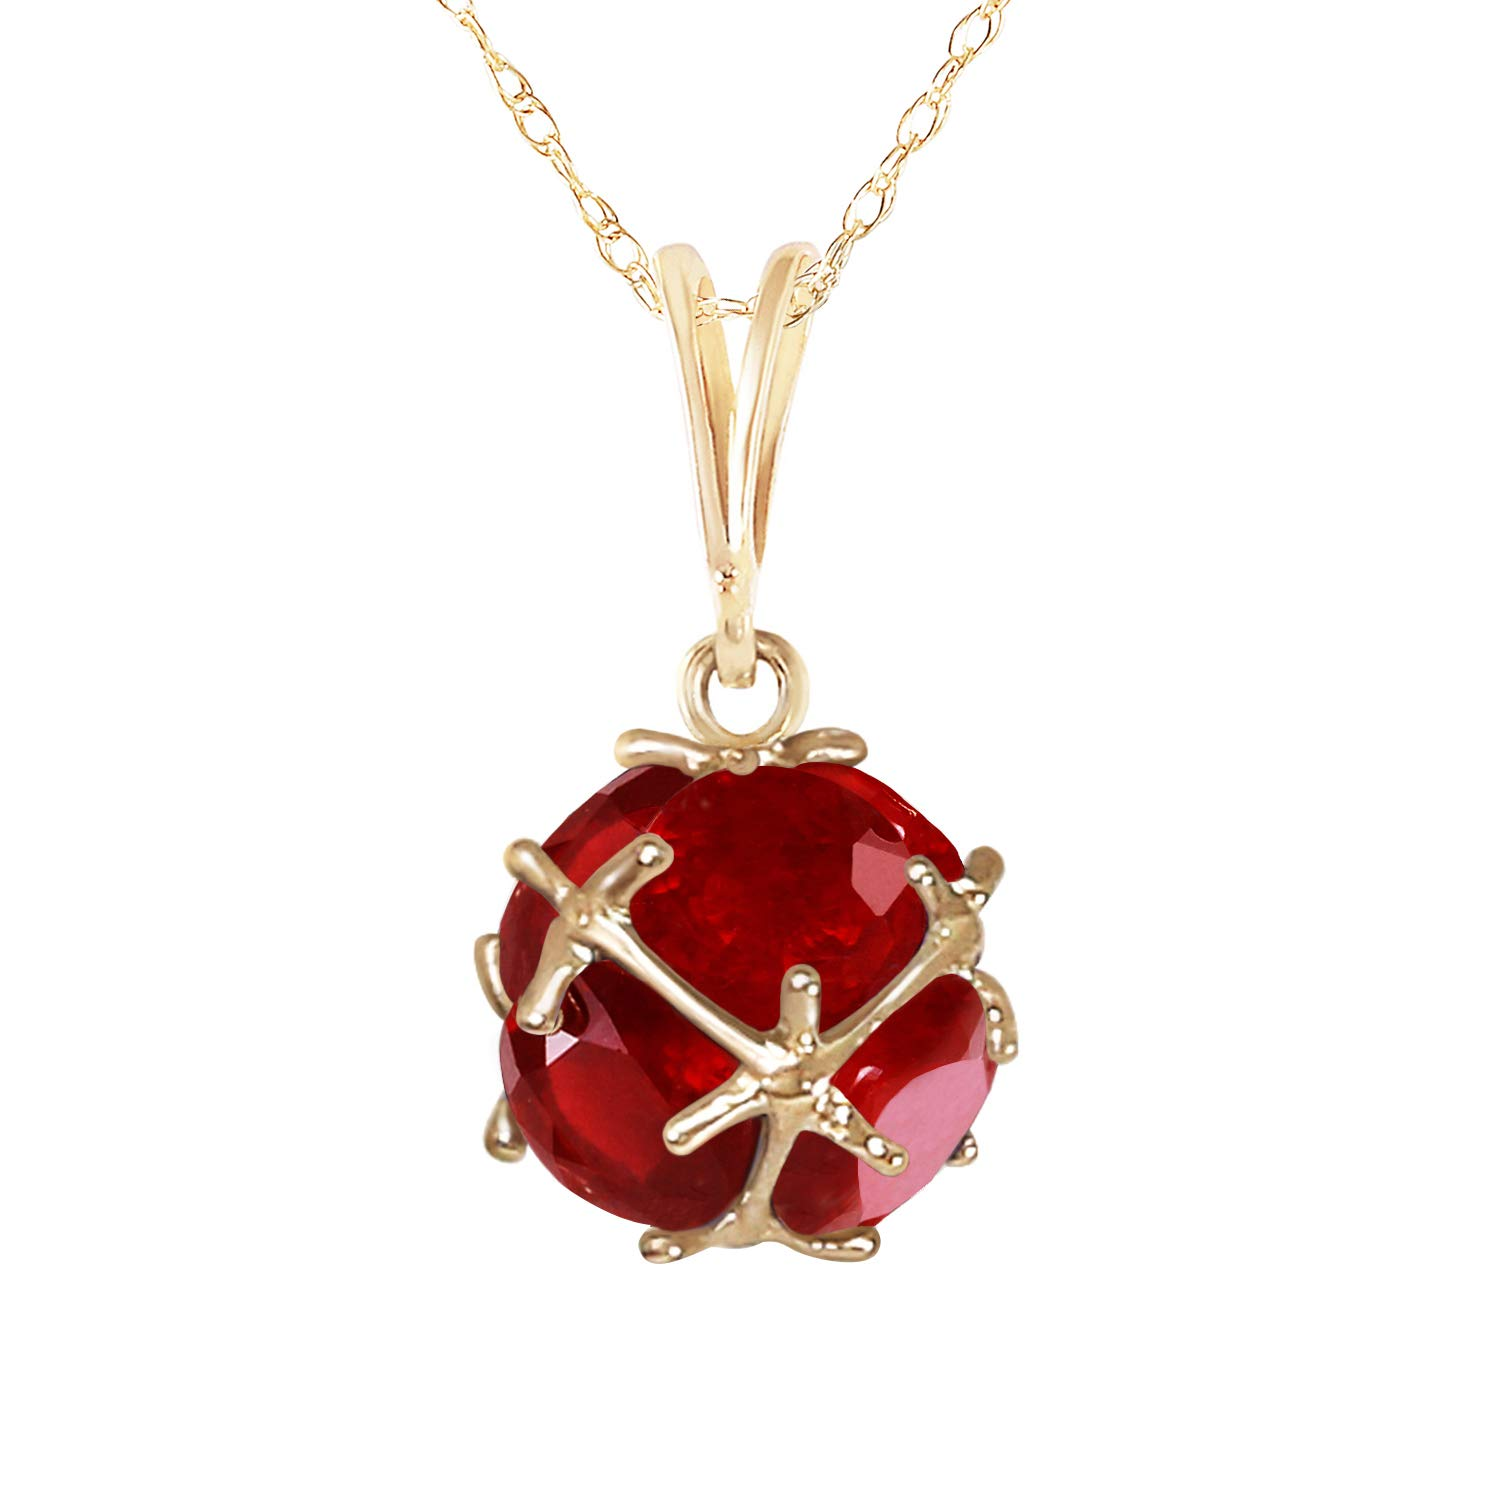 Galaxy Gold 14K Yellow Gold Necklace with Natural Rubies - Size 24